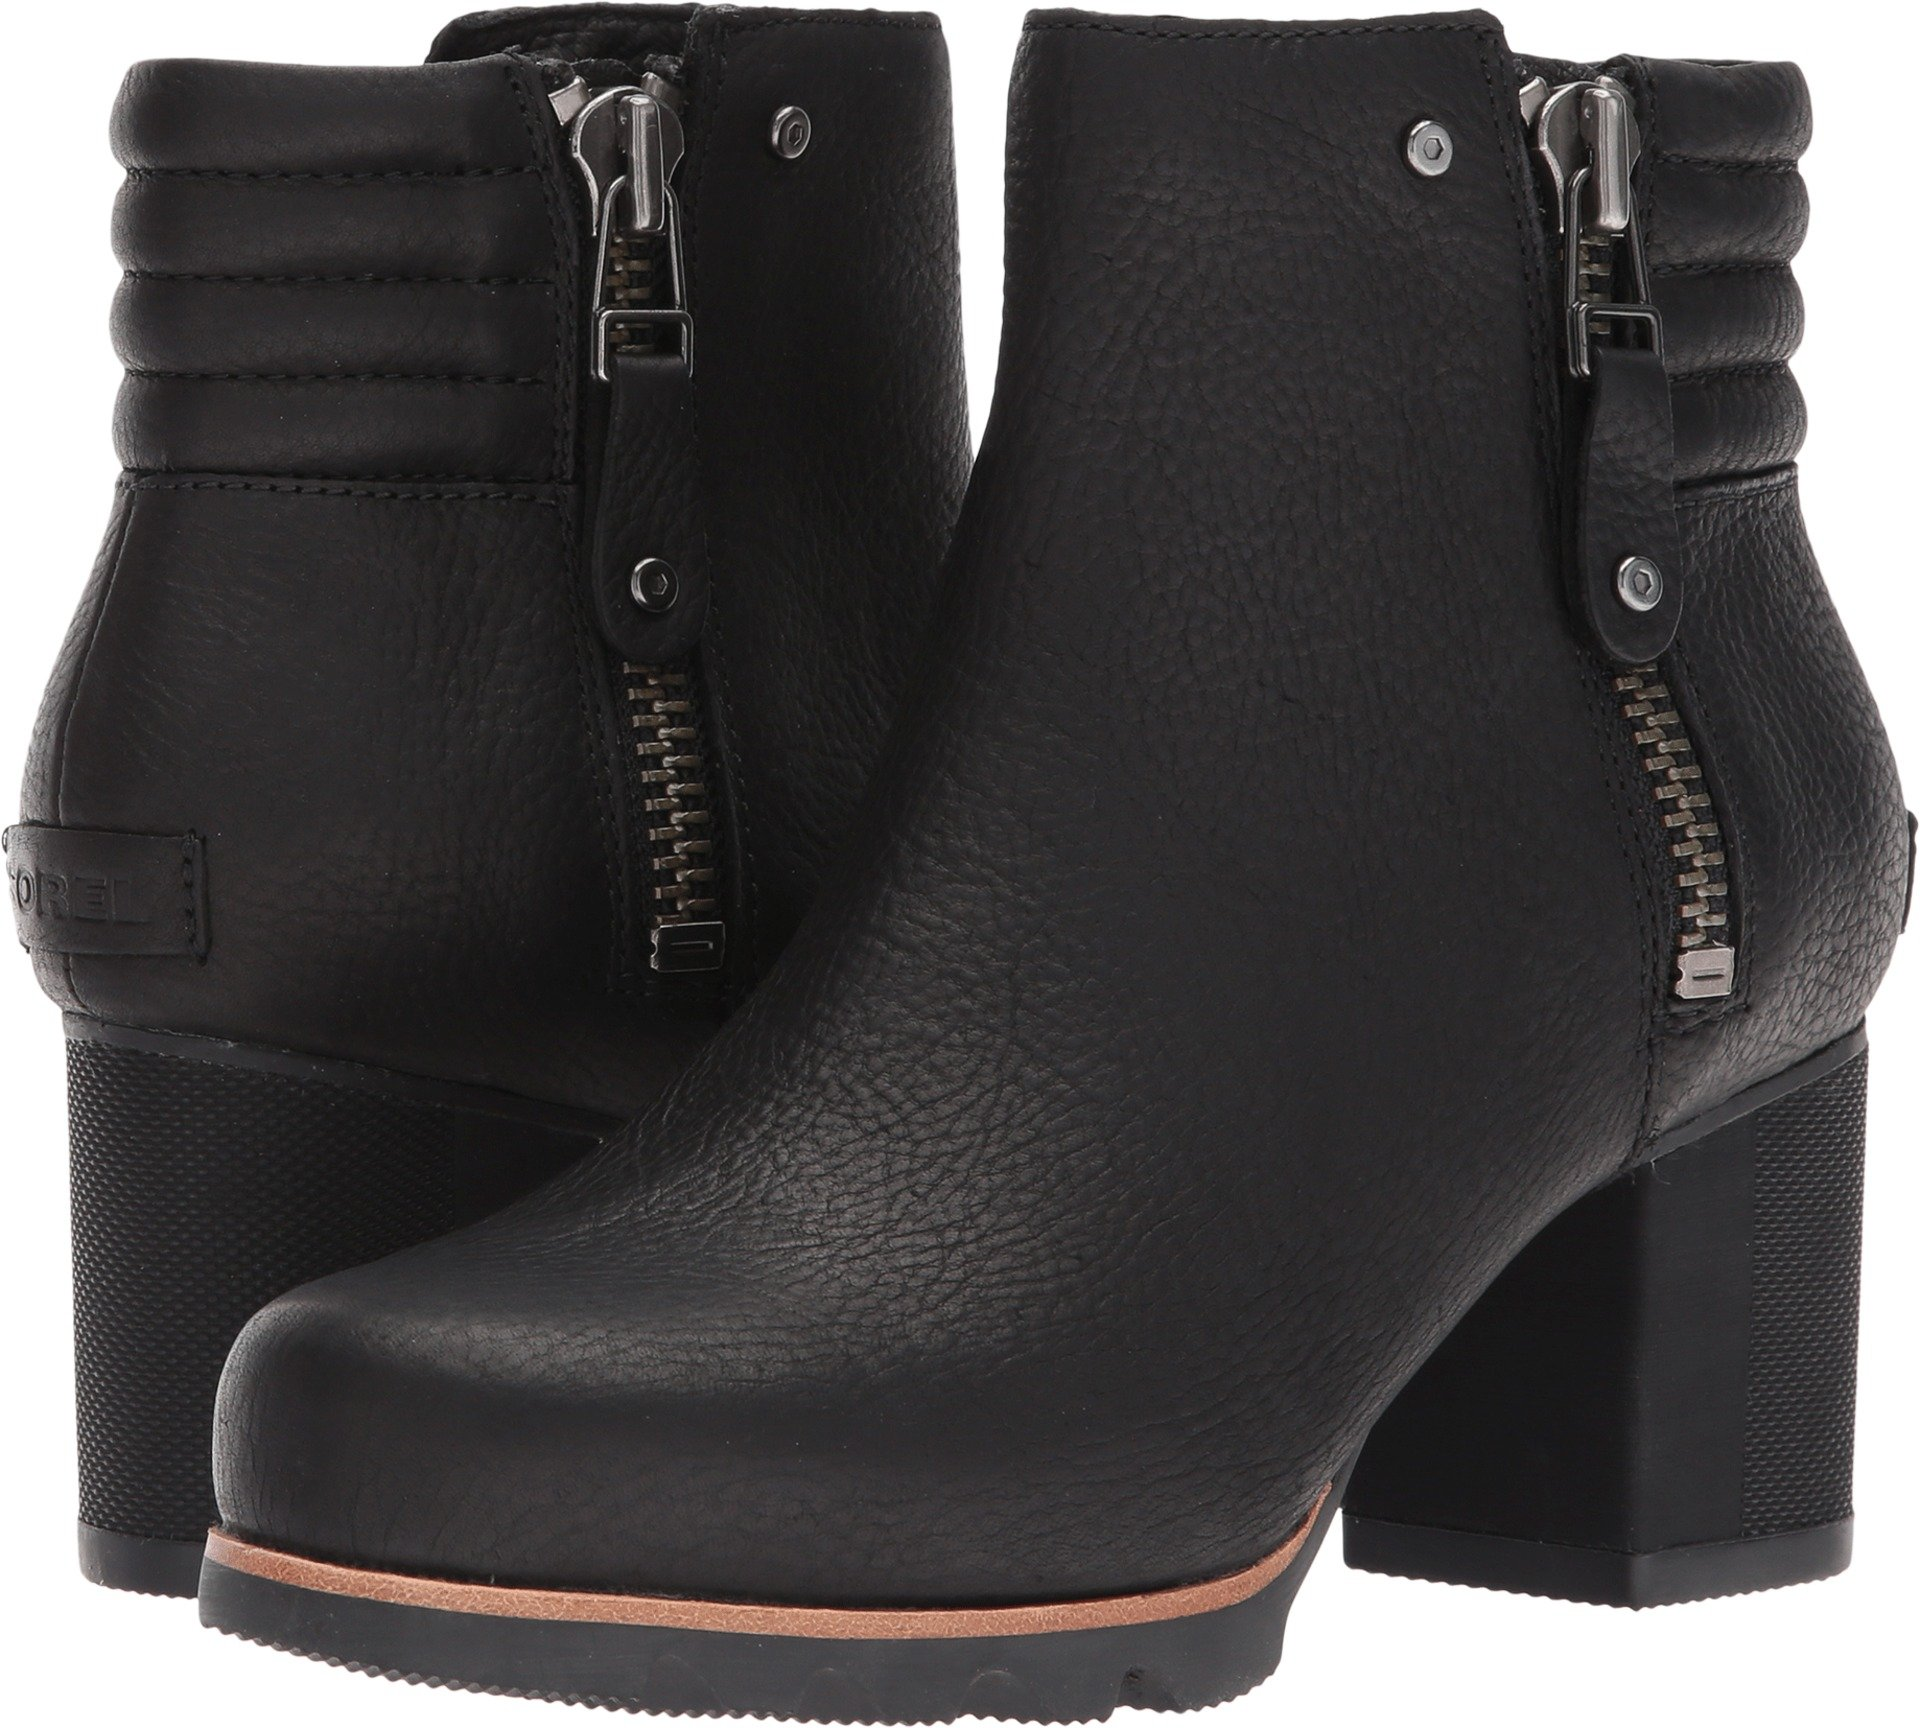 SOREL Women's Danica Bootie Black/Quarry 8 B US by SOREL (Image #1)